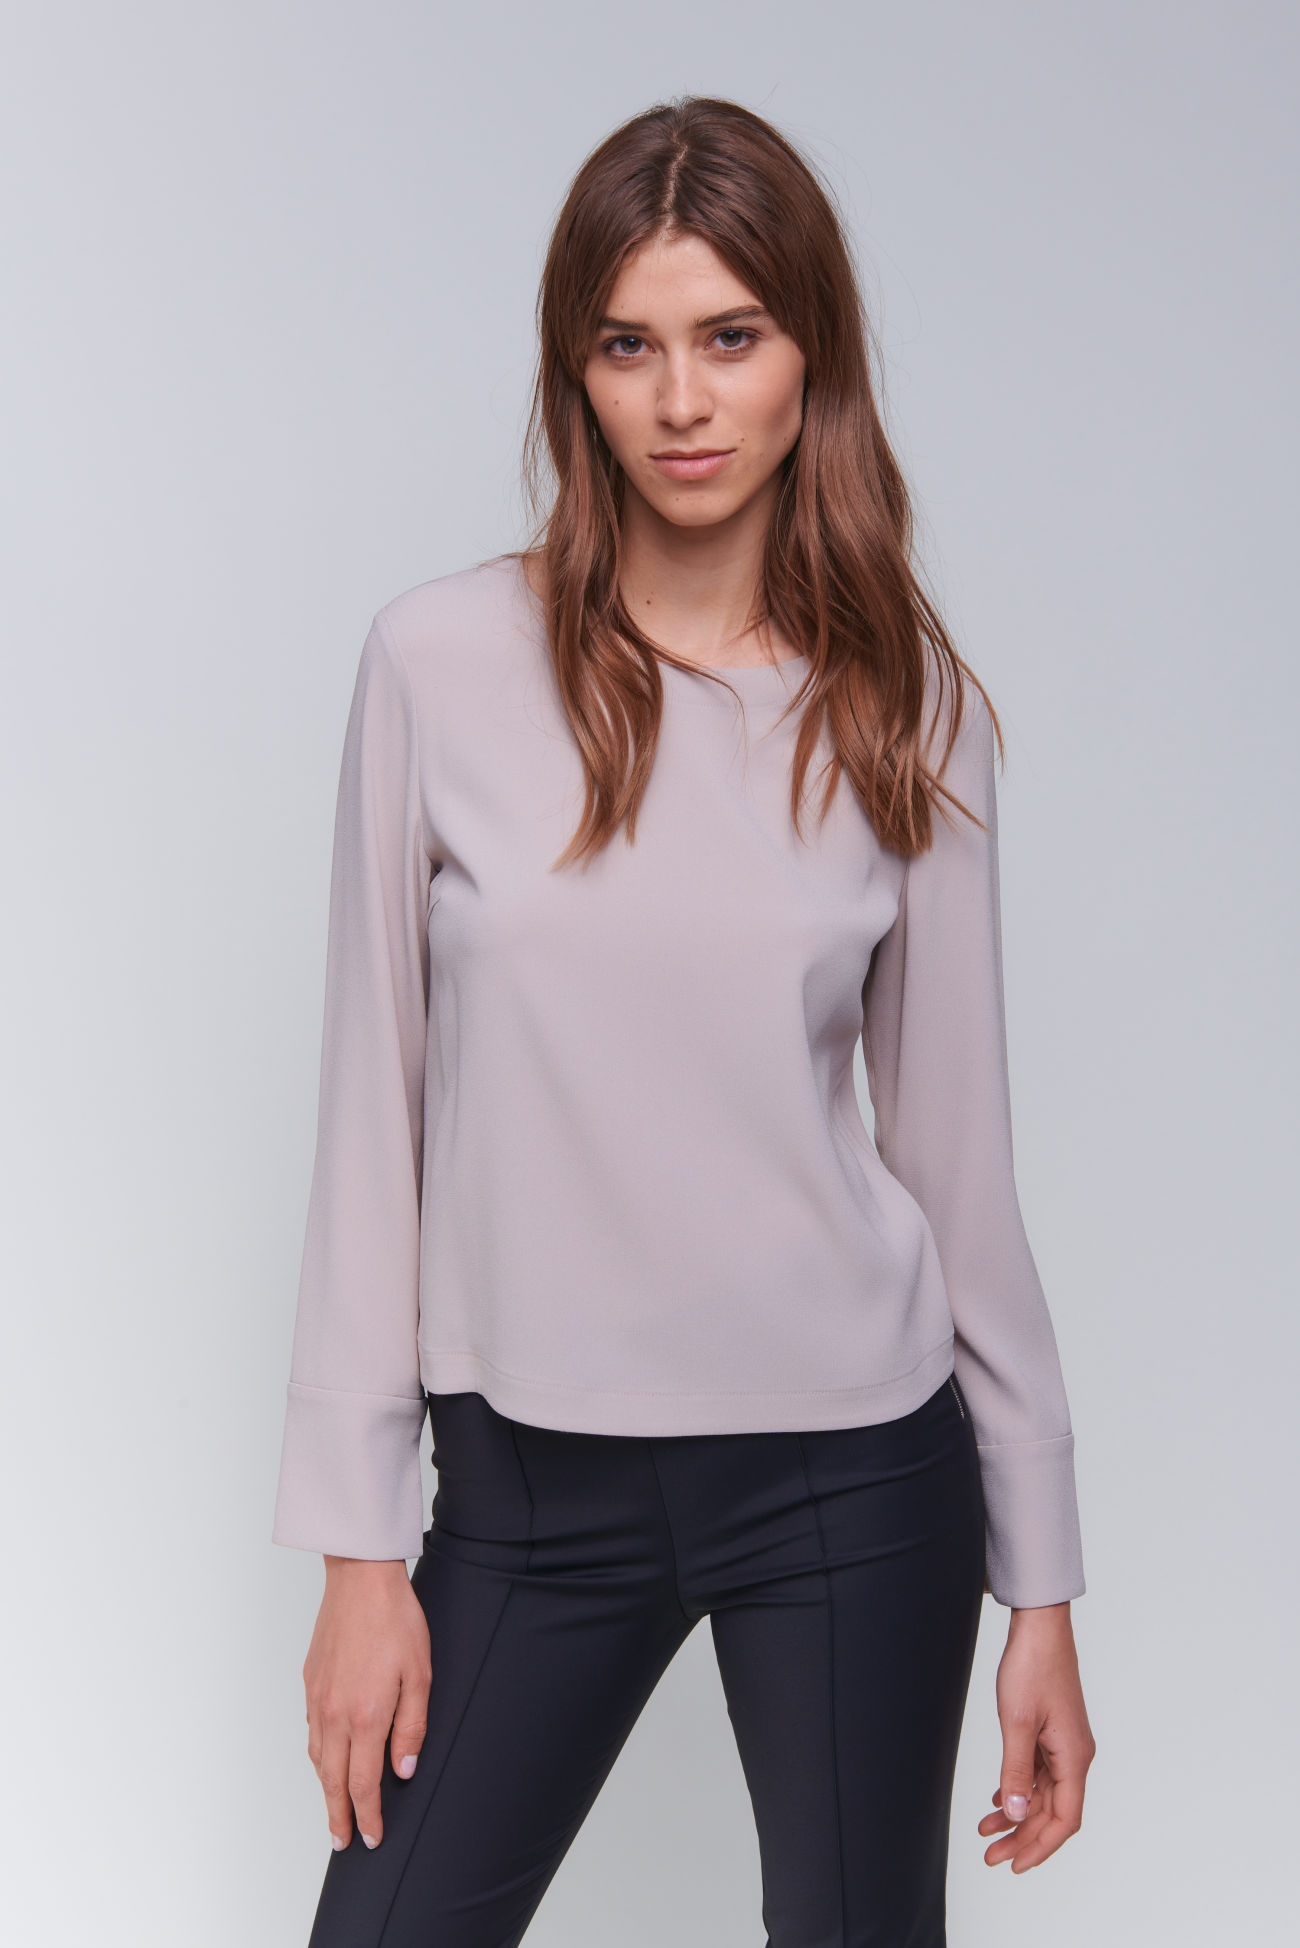 Precious long sleeve top made of crêpe